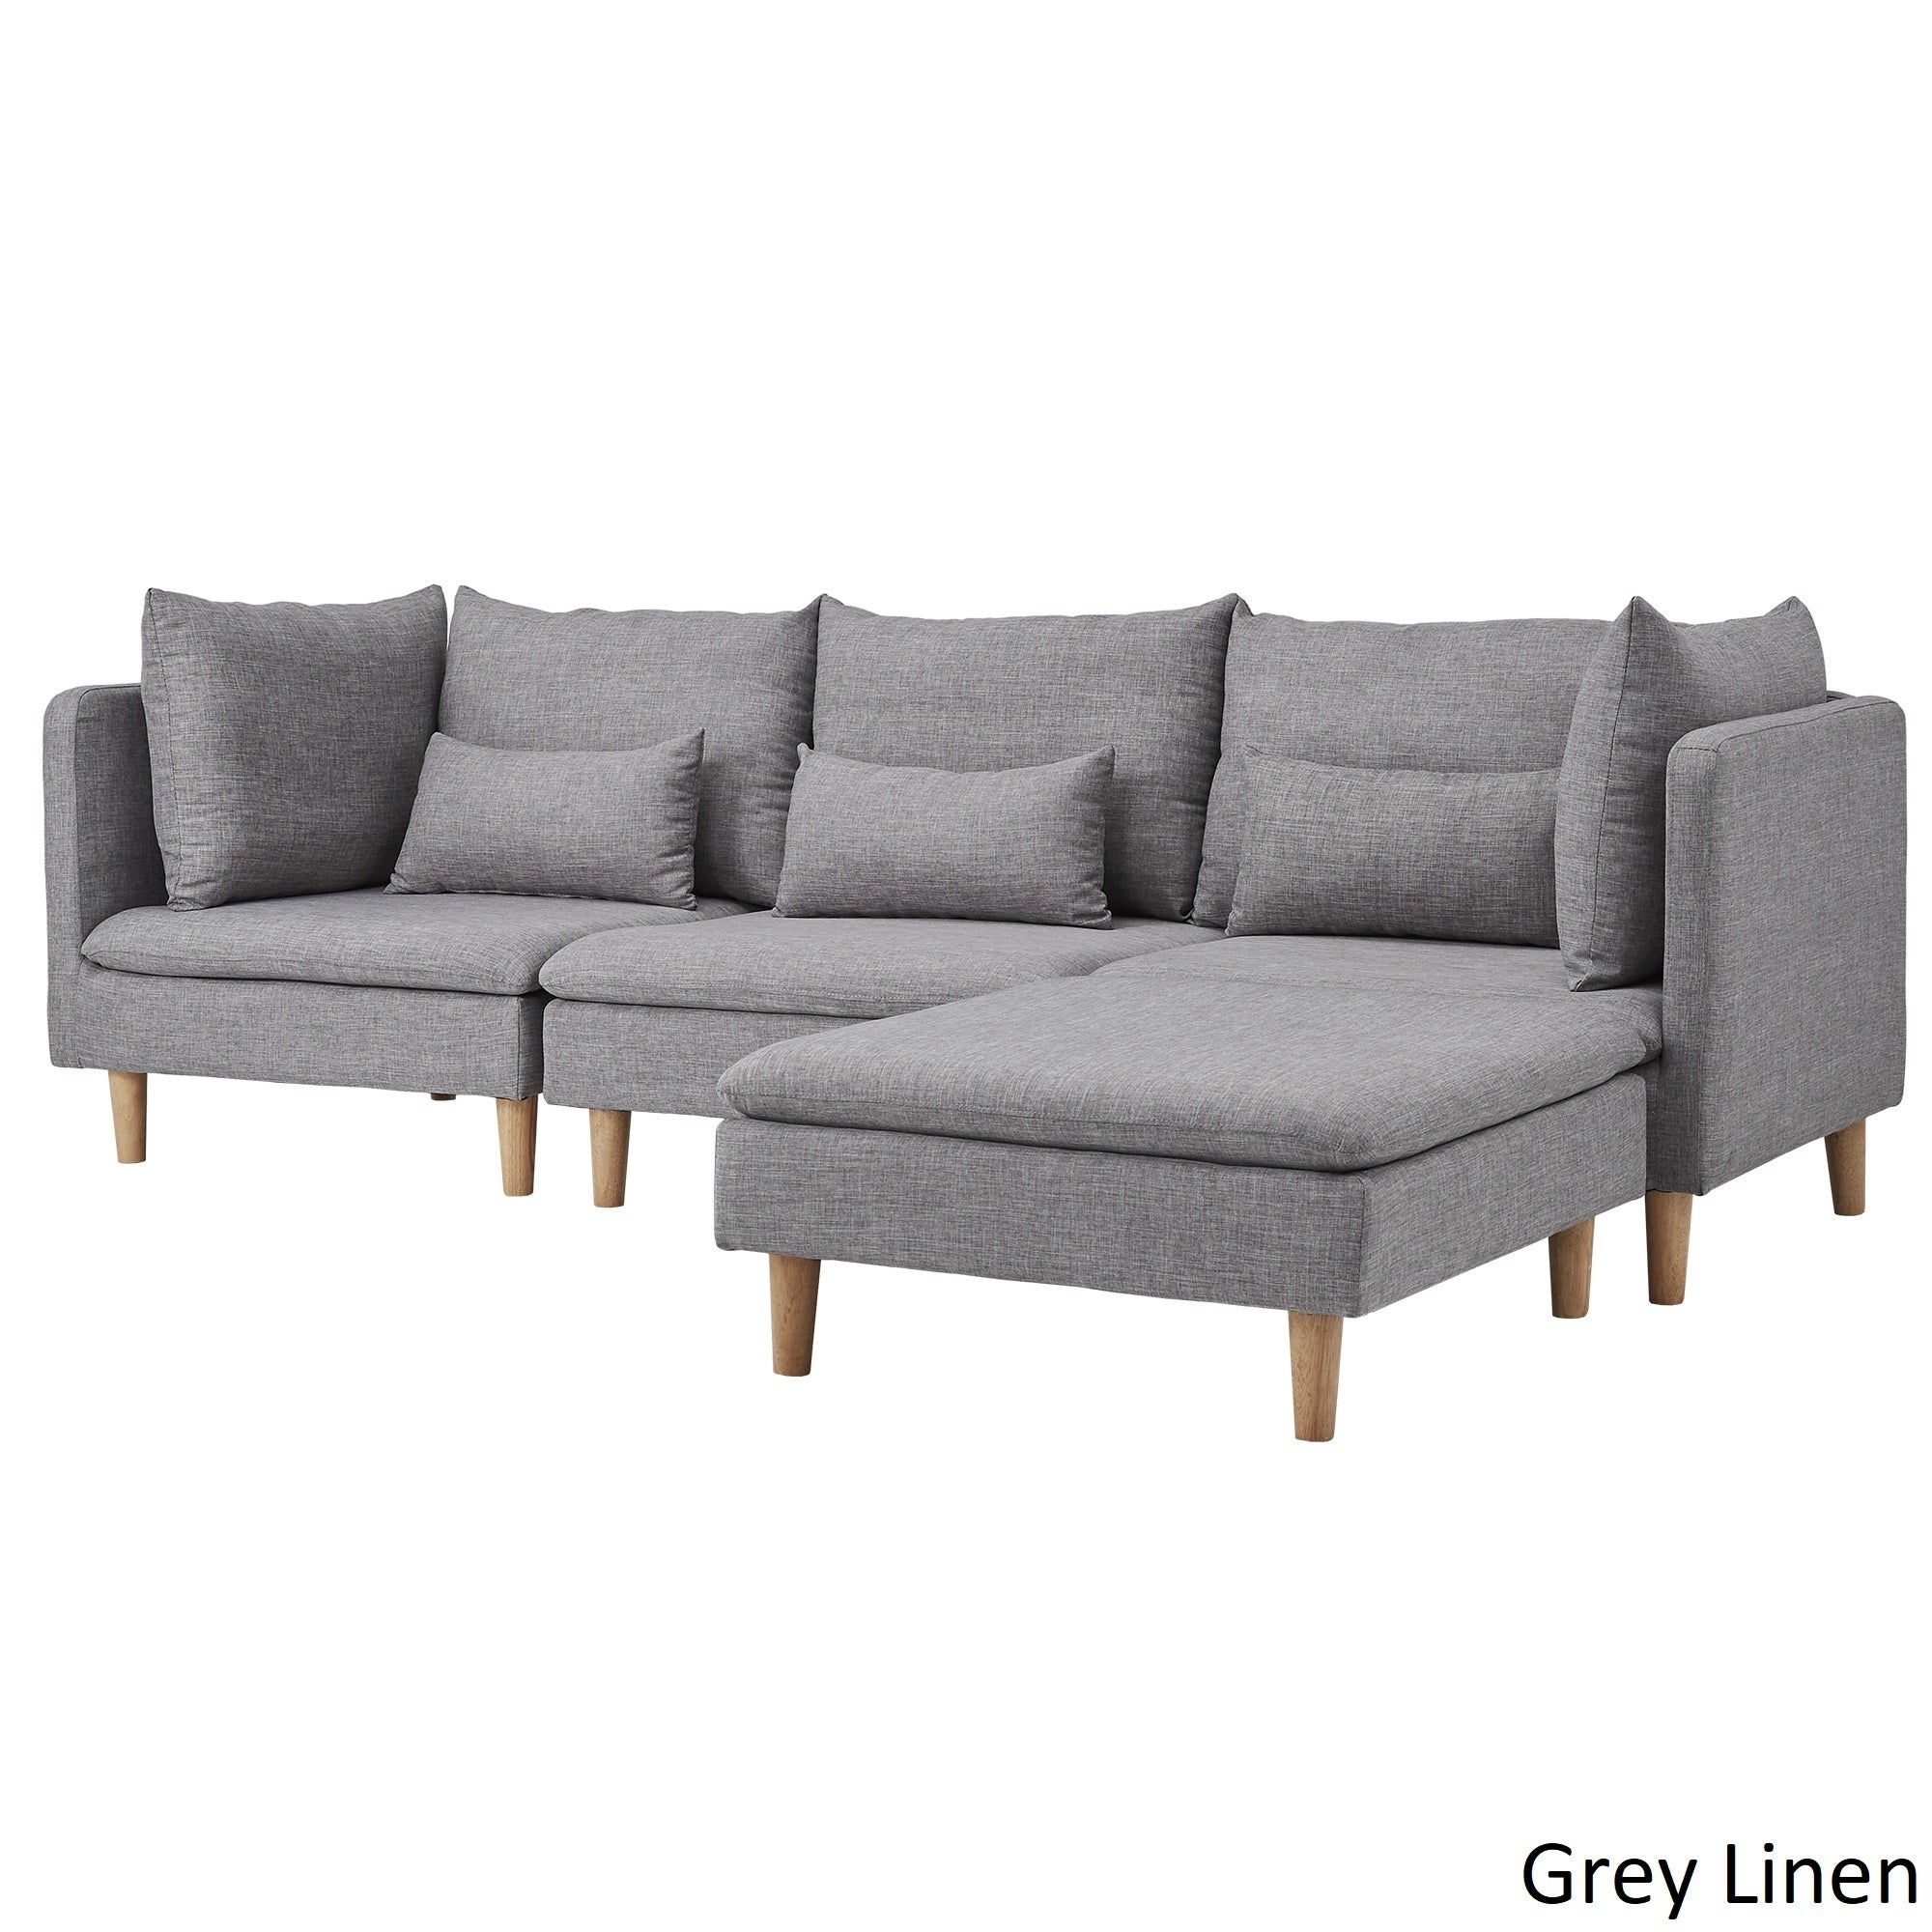 Hervorragend Fabulous Affordable Malina Modular Fabric Lshaped Chaise Sectional Sofa By  Inspire Q Modern Options With Couch U Form Modern With Sofas U Form